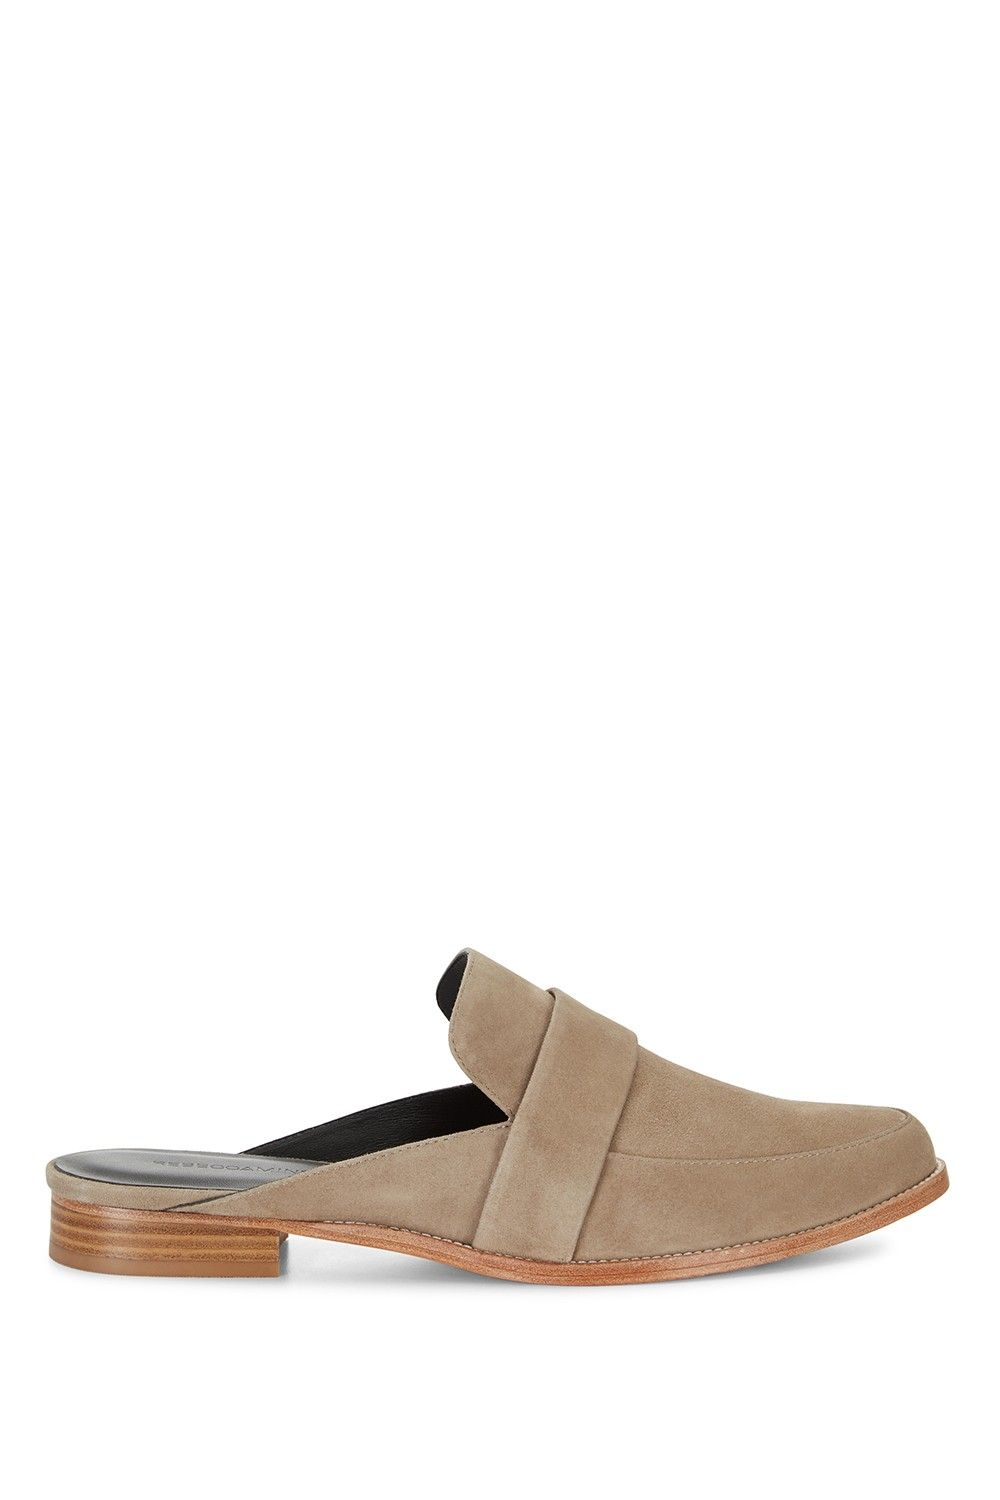 Mika Slipper - Footwear remix. The ease of suede, the elegance of loafers, and the super-casual vibes of a slide are mashed up into the cool-girl shoe of the season. A micro heel adds a sense of polish and gives you about a quarter-inch of height (we'll take it).